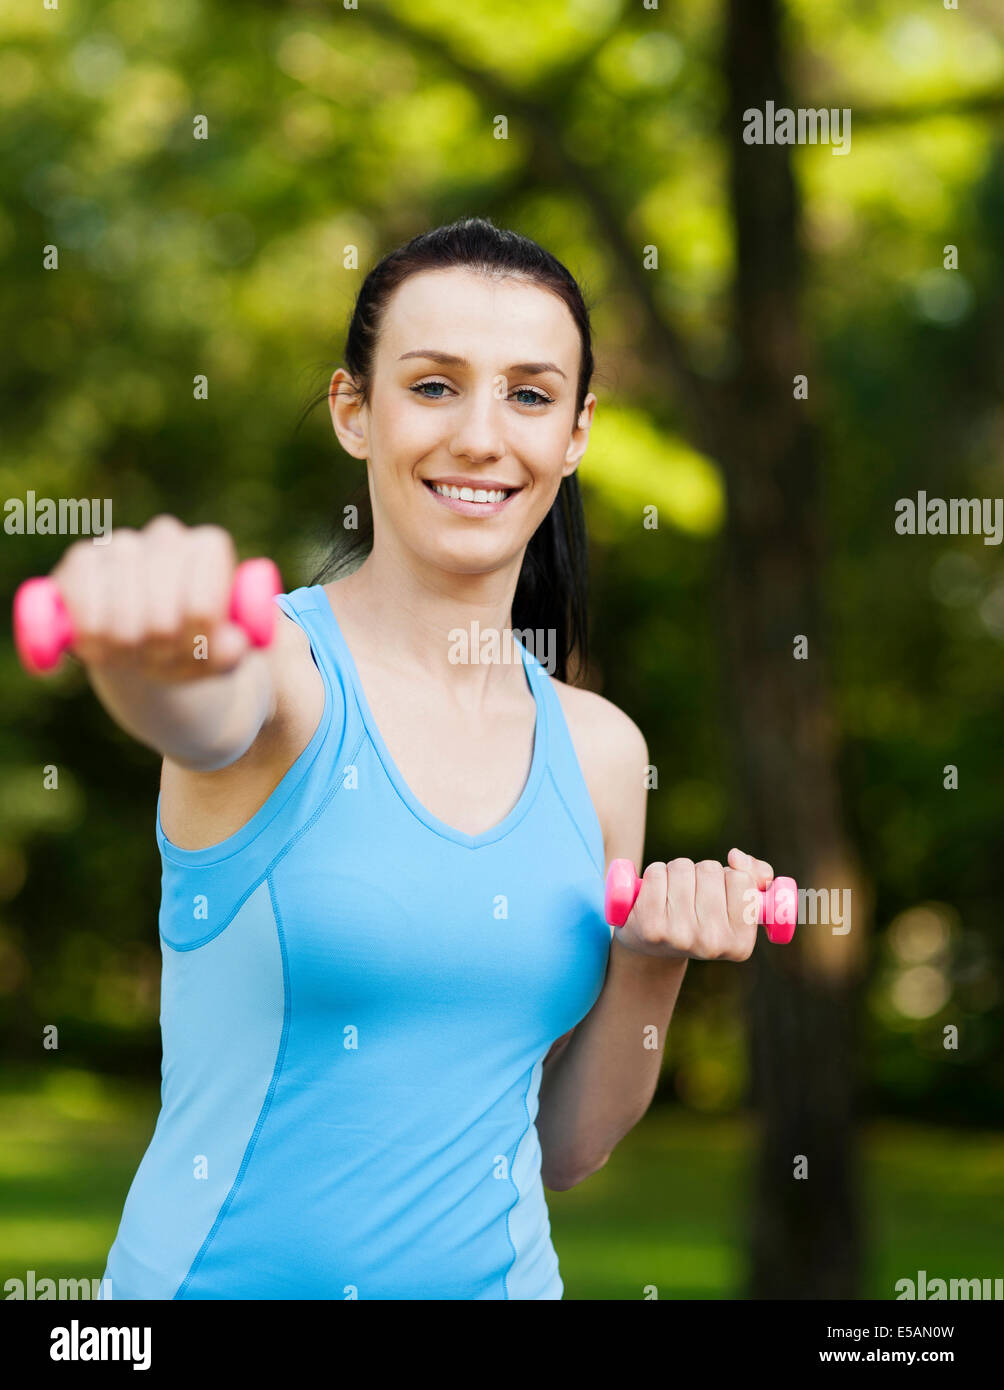 Young woman with dumbbells, Debica, Poland - Stock Image